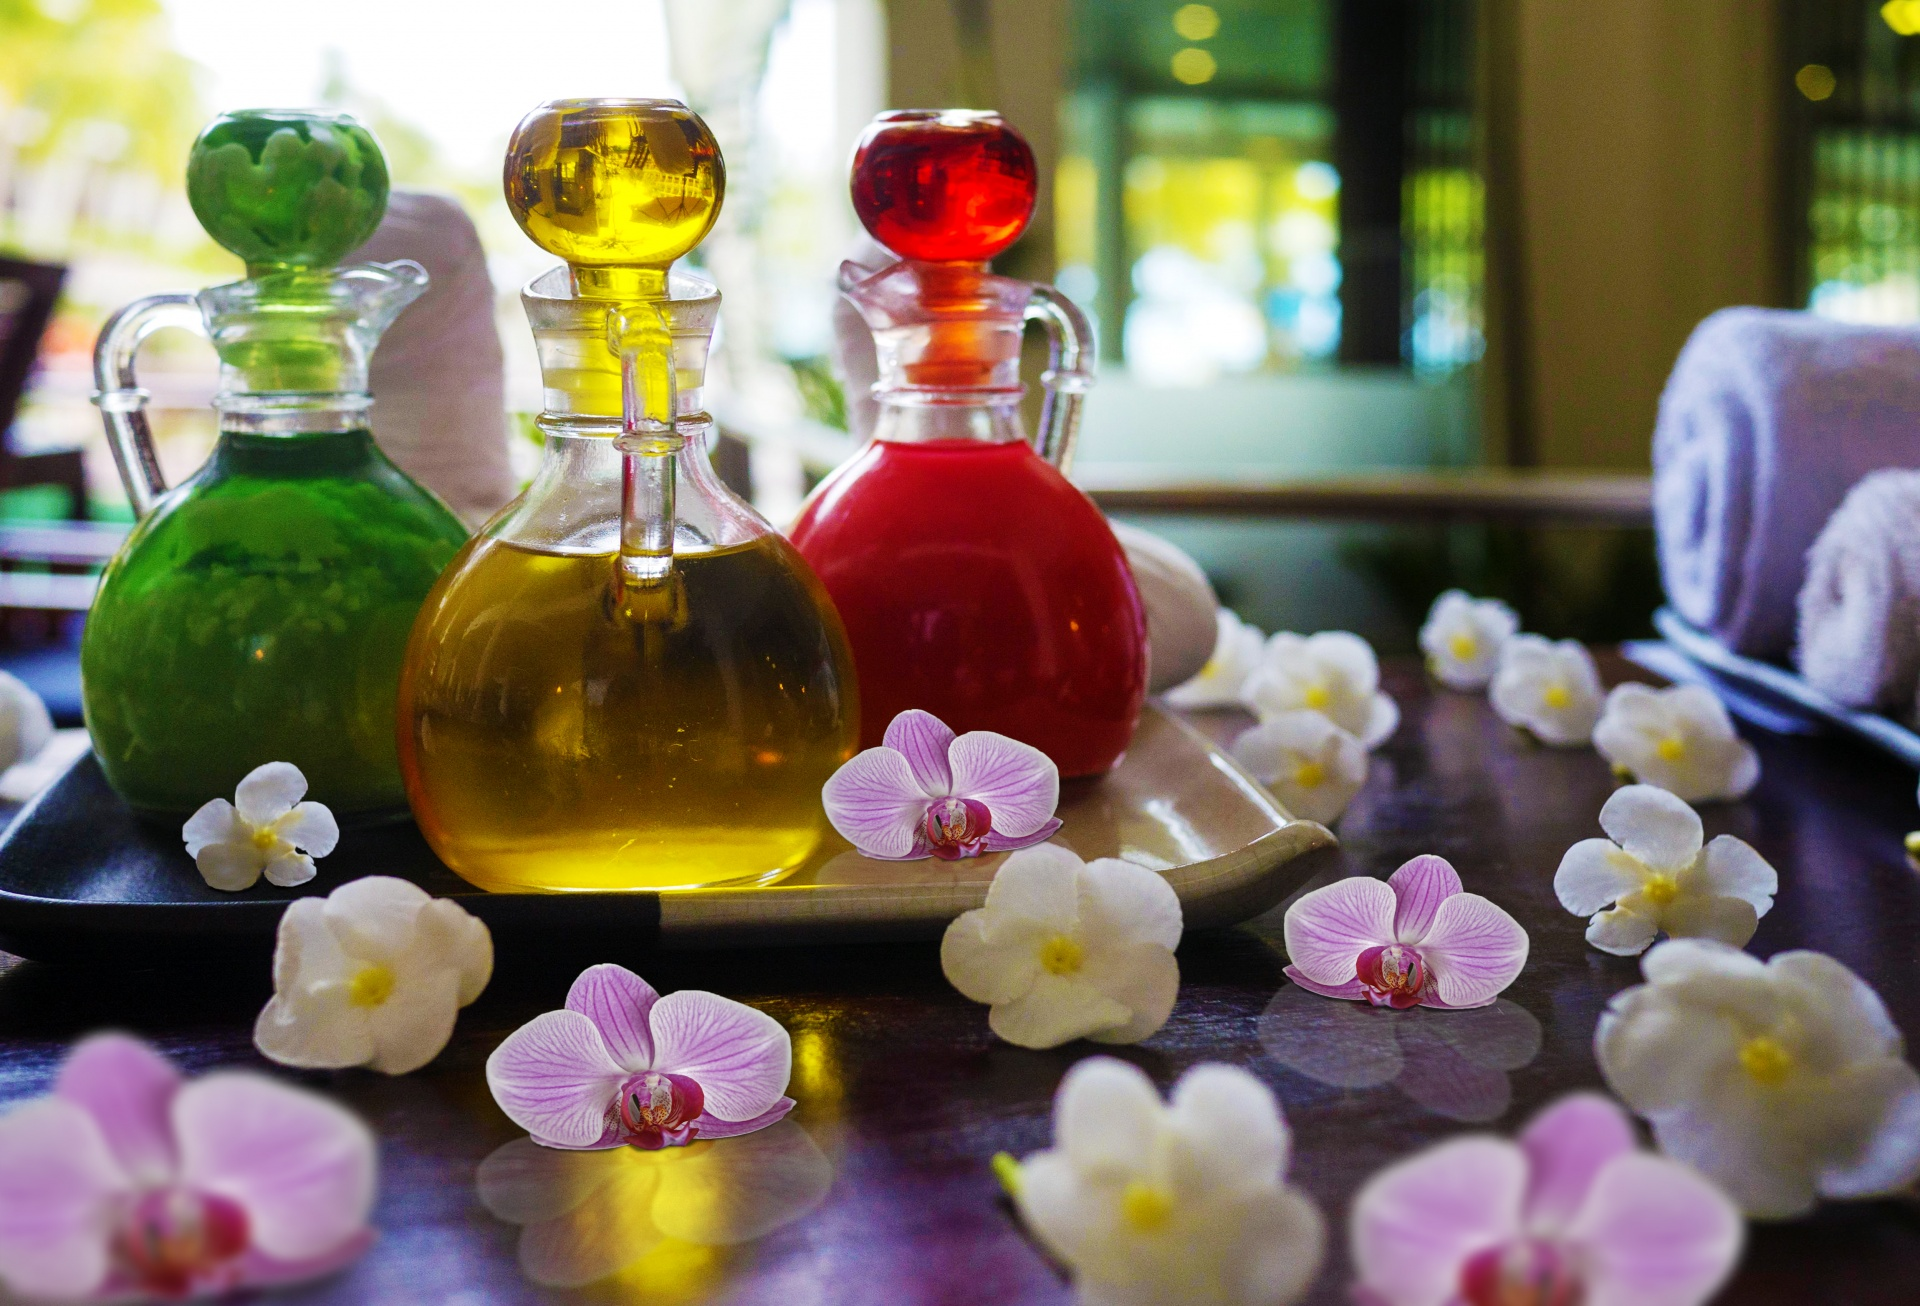 massage-oils-nestled-in-orchids.jpg